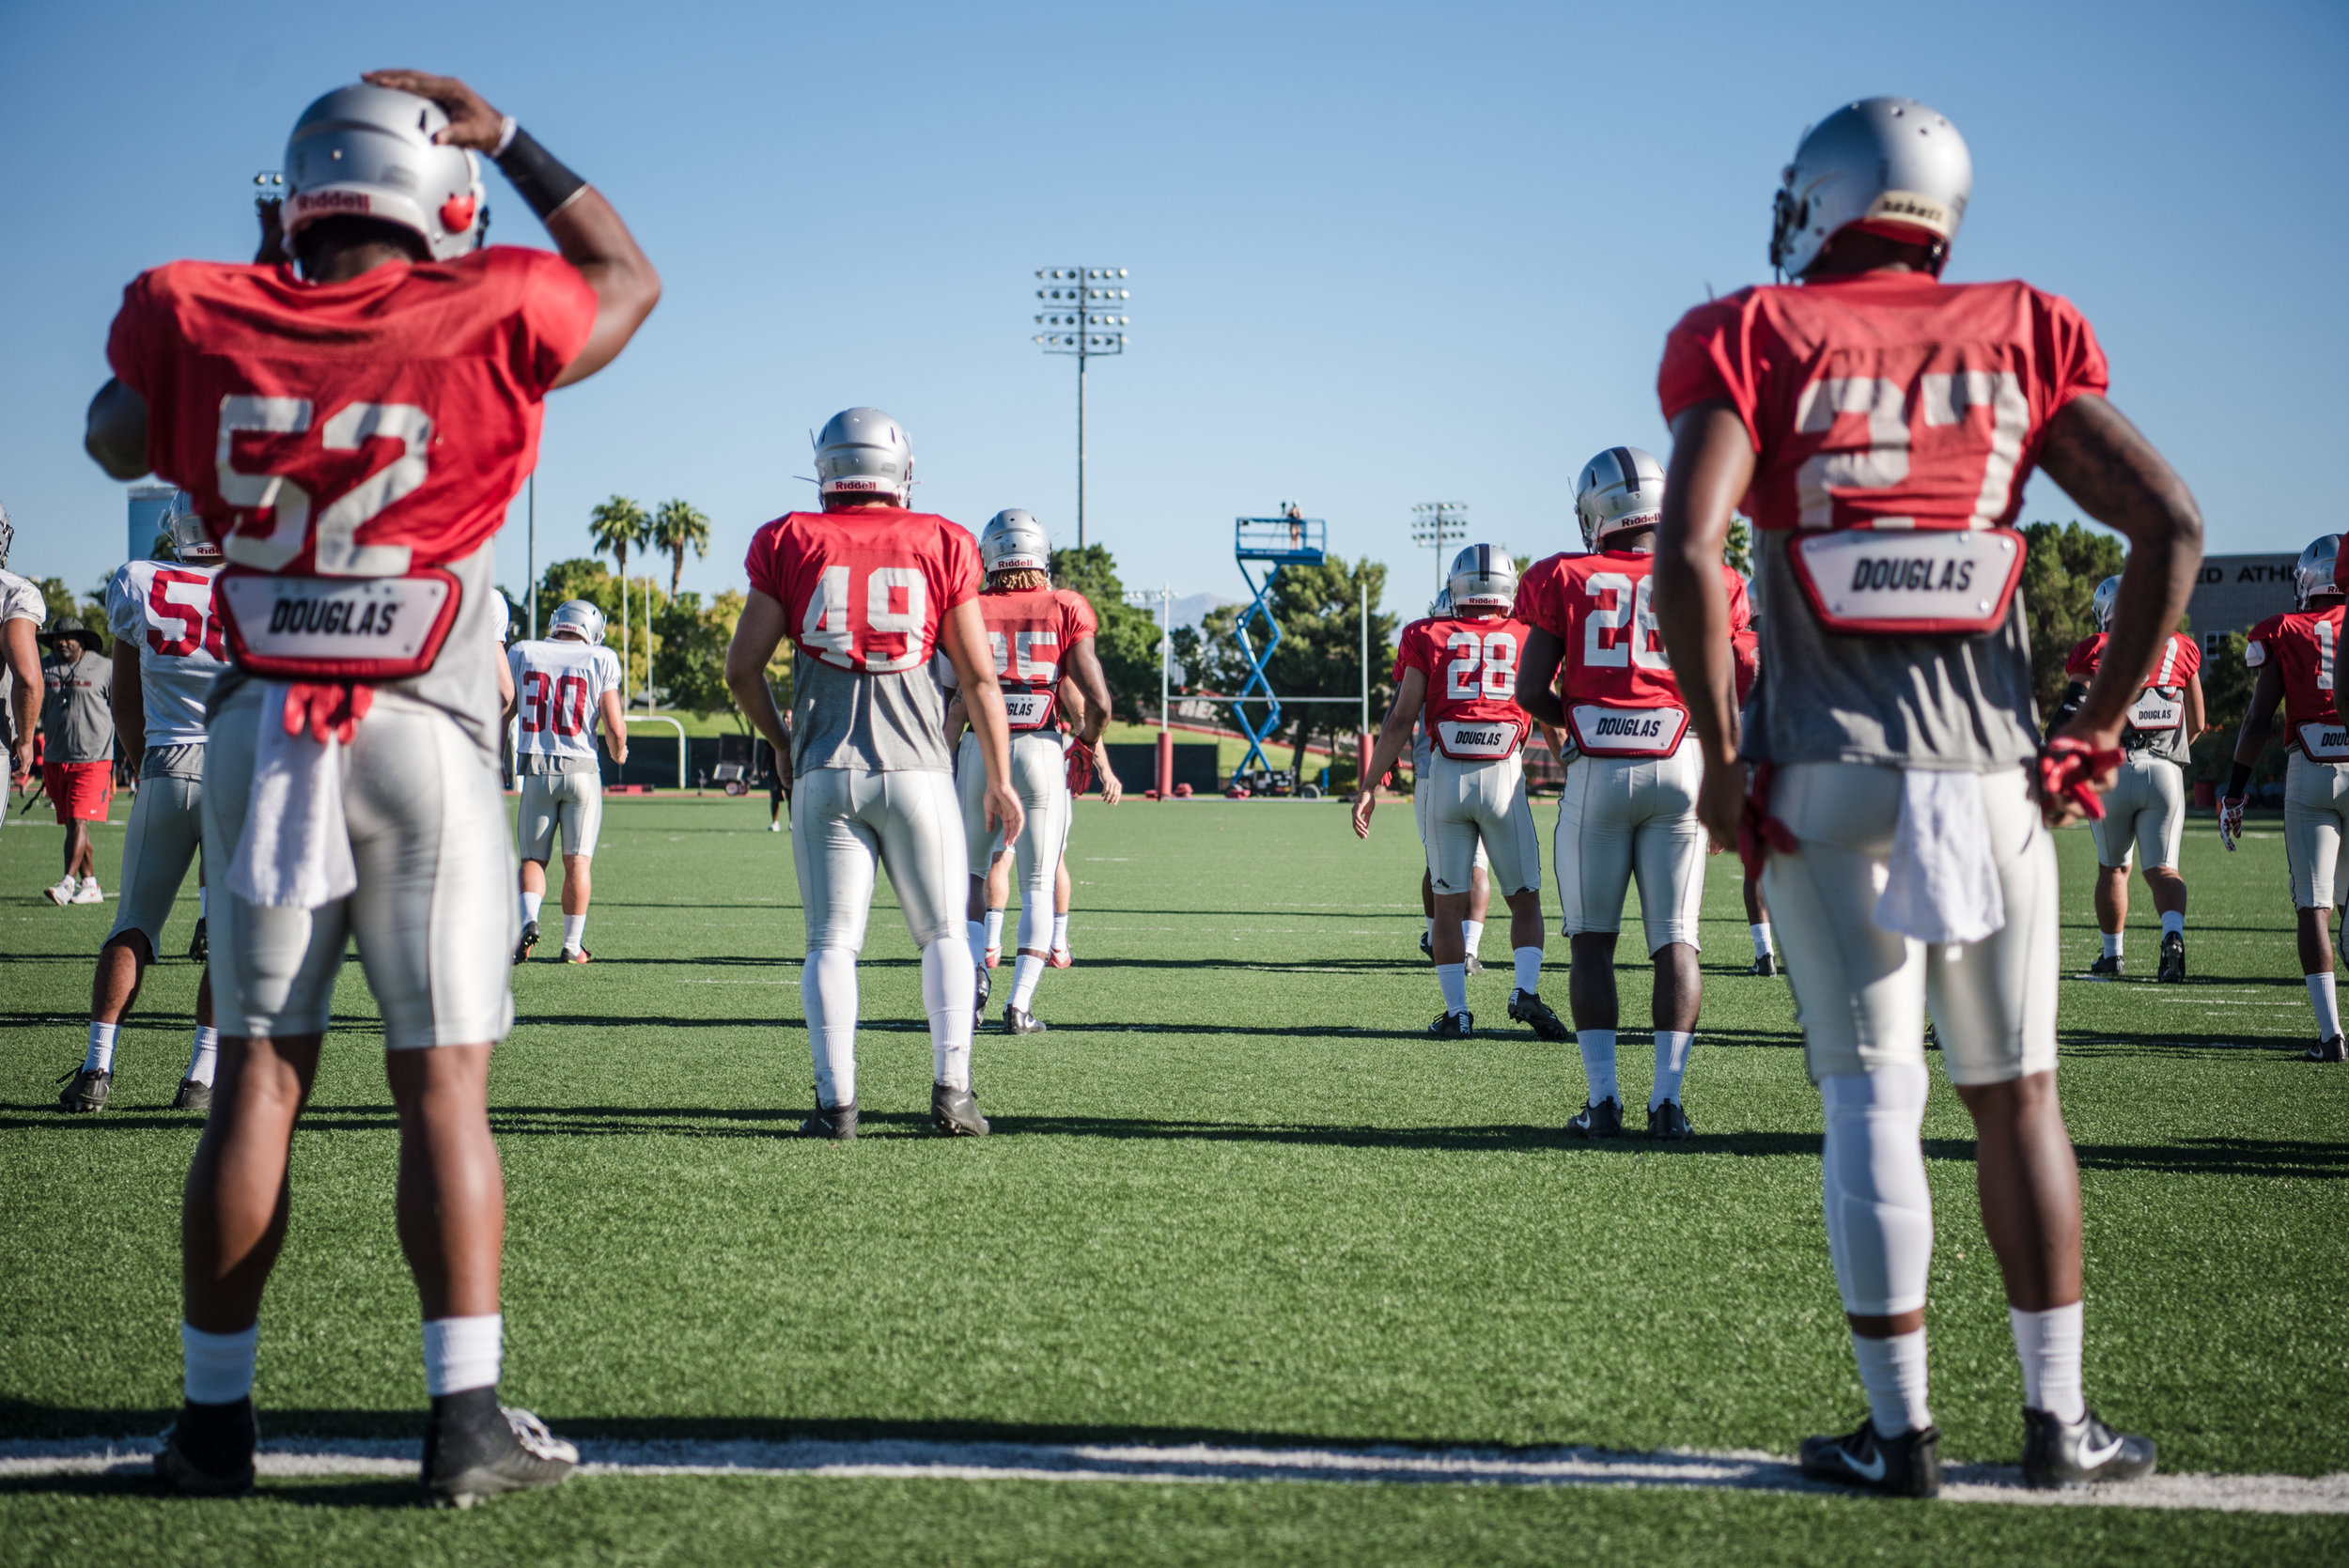 UNLV Men's Football at UNLV Rebel Park during practice on Saturday, Aug. 19, 2017, in Las Vegas. Morgan Lieberman Las Vegas Review-Journal